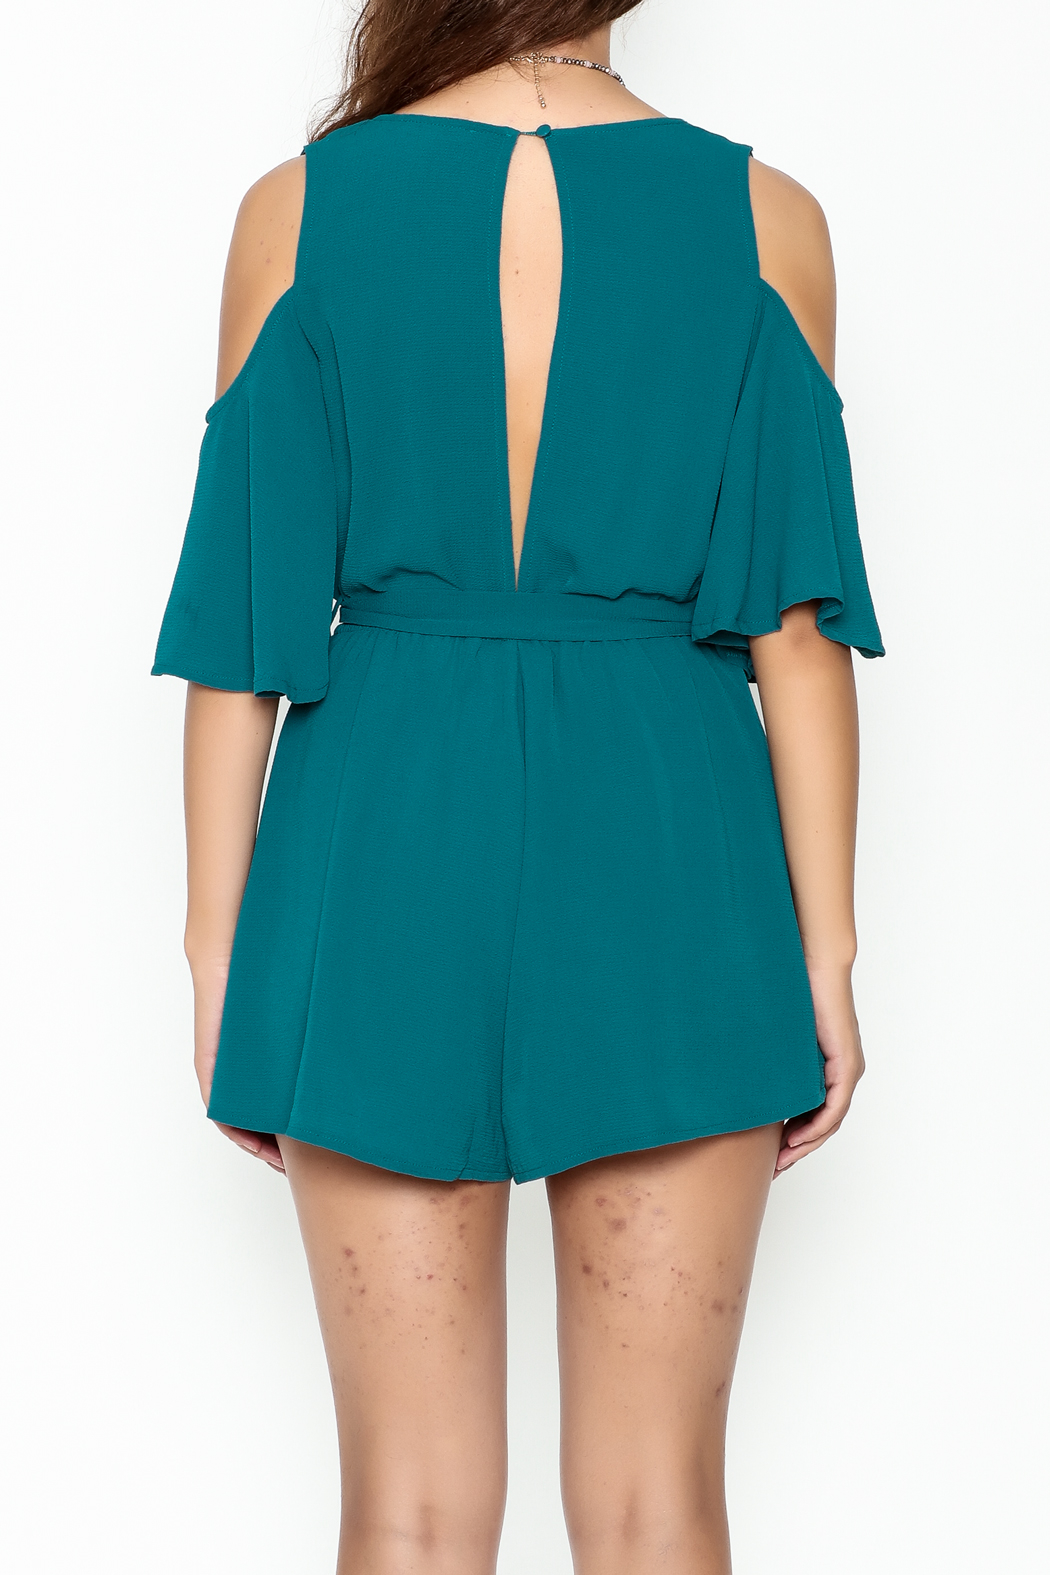 luxxel Open Shoulder Romper - Back Cropped Image